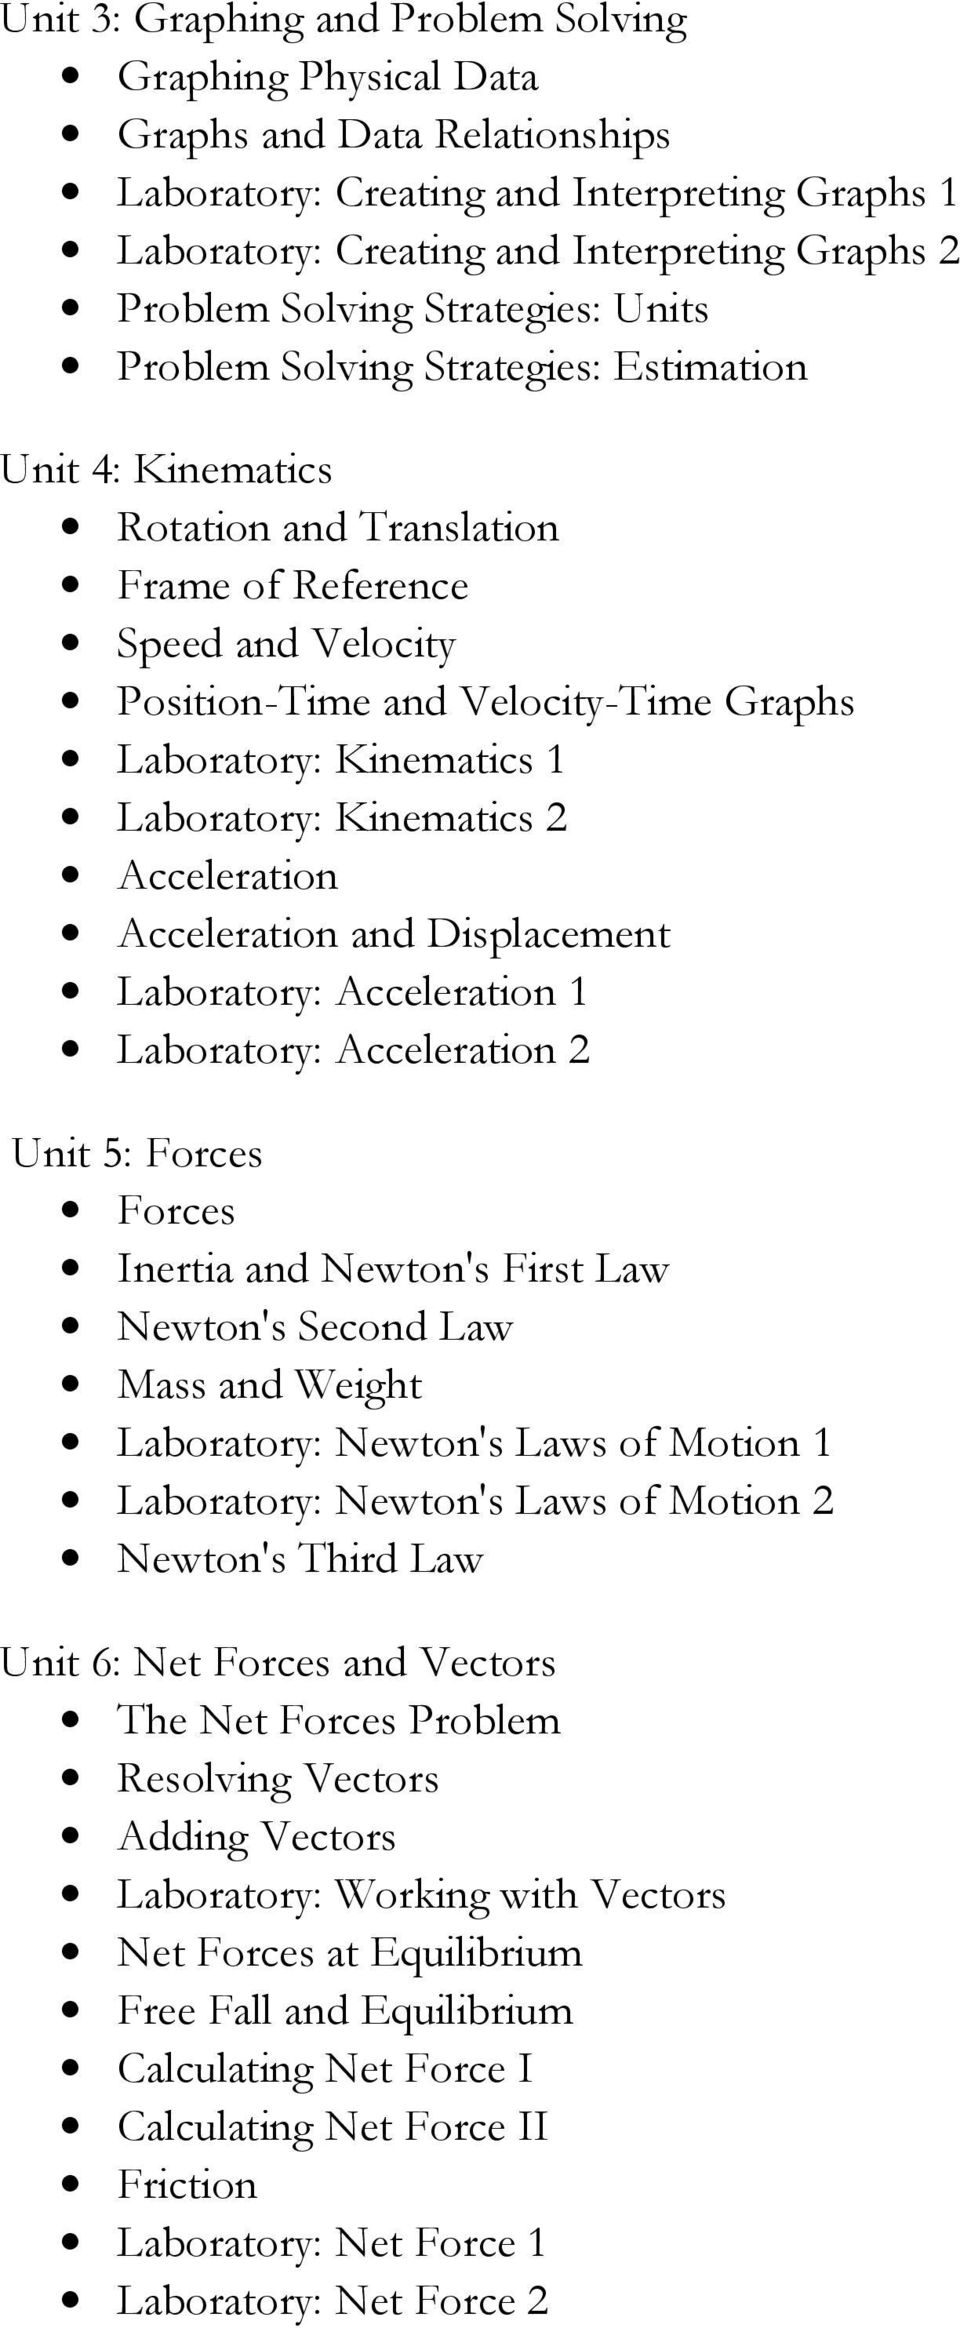 Kinematics 1 Laboratory: Kinematics 2 Acceleration Acceleration and Displacement Laboratory: Acceleration 1 Laboratory: Acceleration 2 Unit 5: Forces Forces Inertia and Newton's First Law Newton's